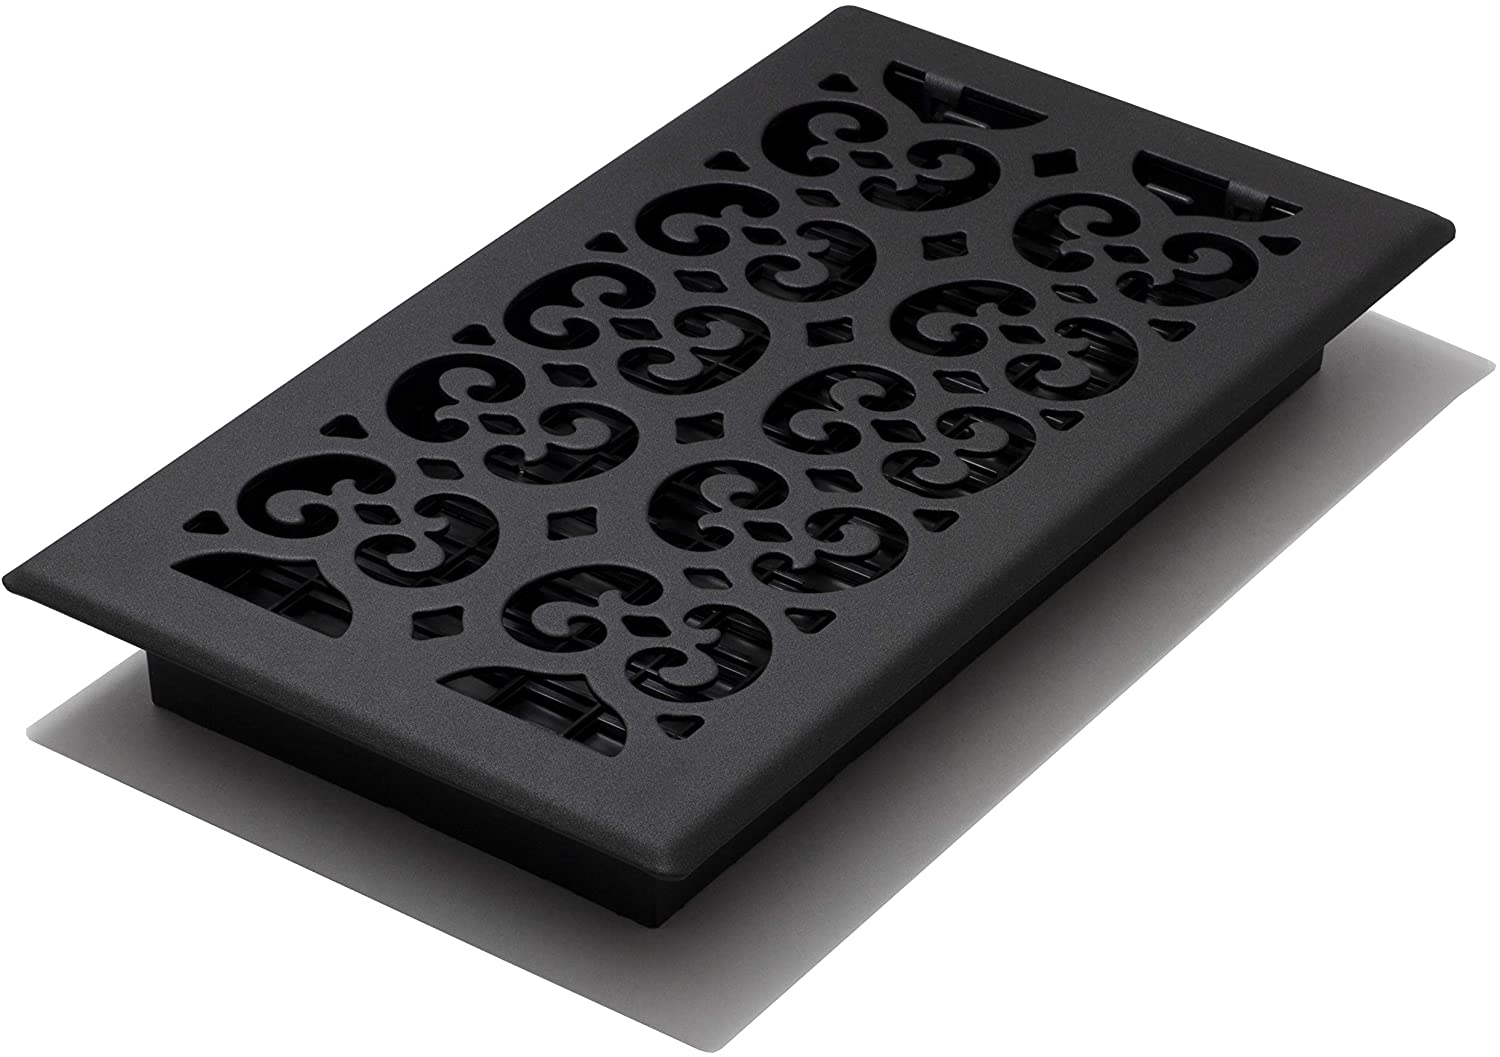 Decor Grates STH612 Scroll Text Floor Register, 6-Inch by 12-Inch, Black